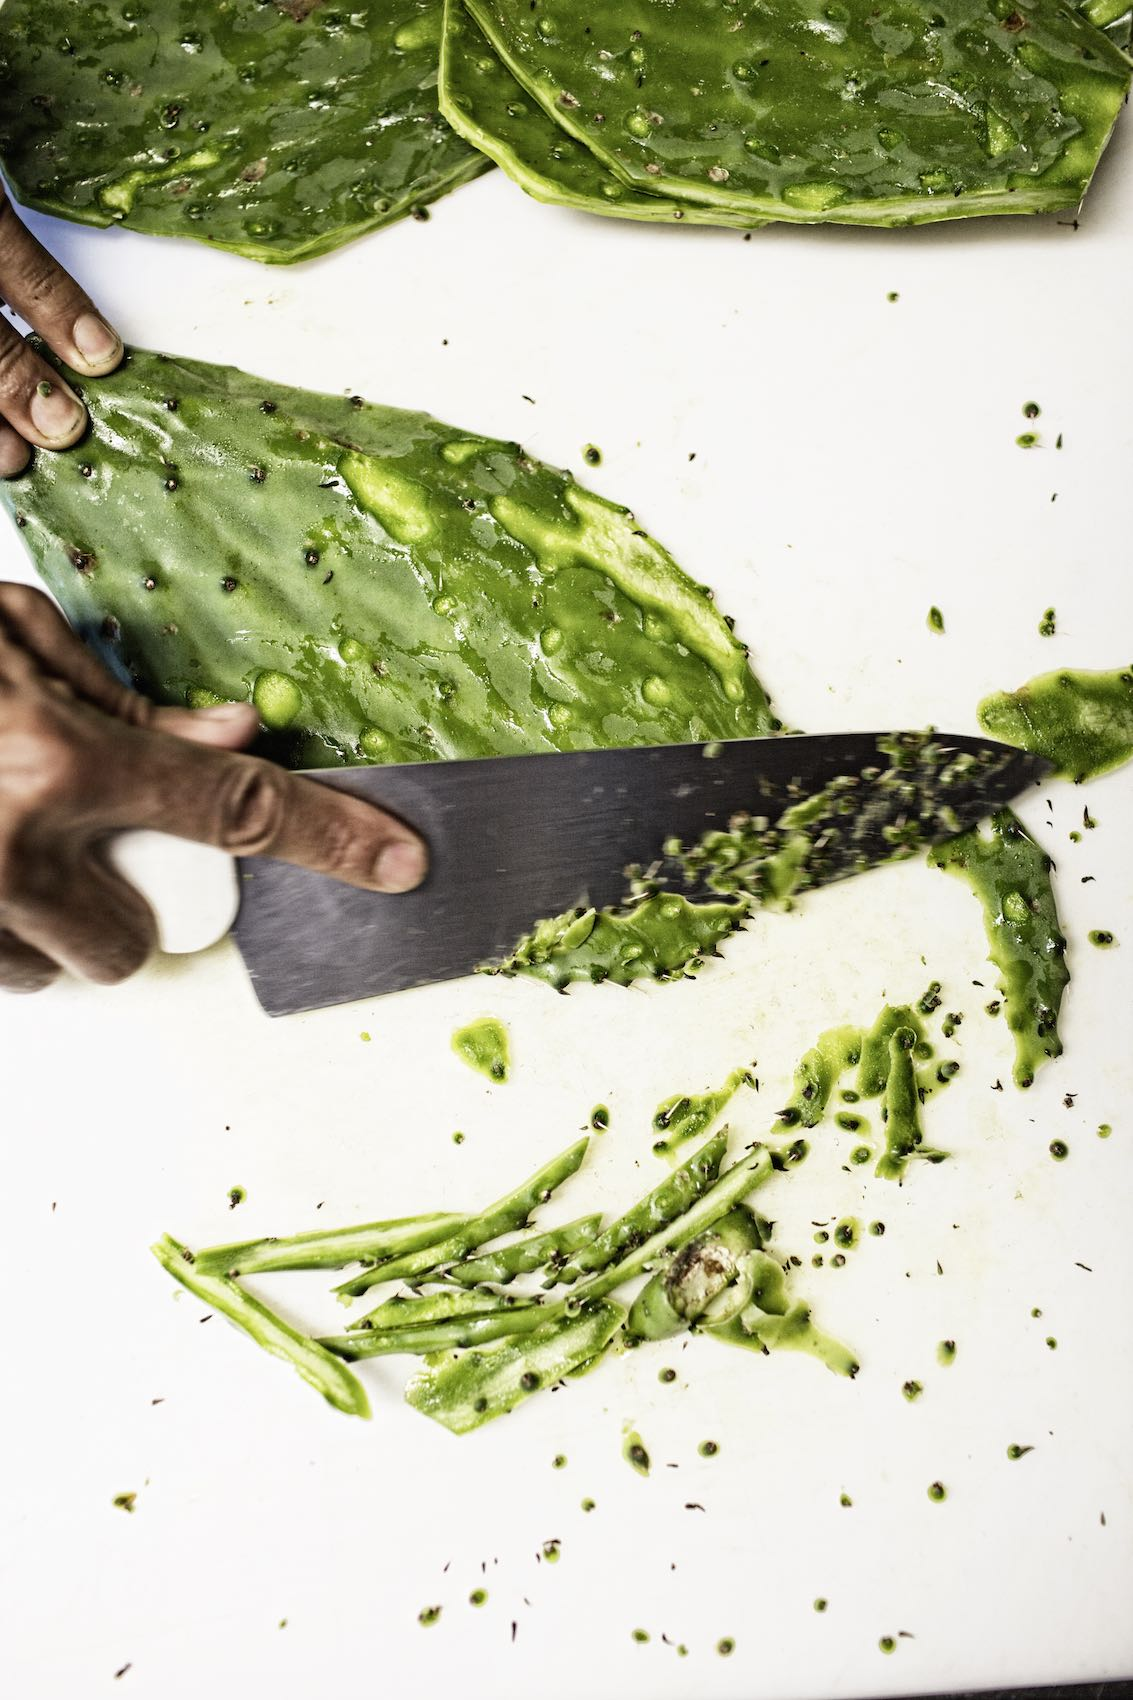 Jody Horton Photography - Chef knife cutting cacti on white cutting board.